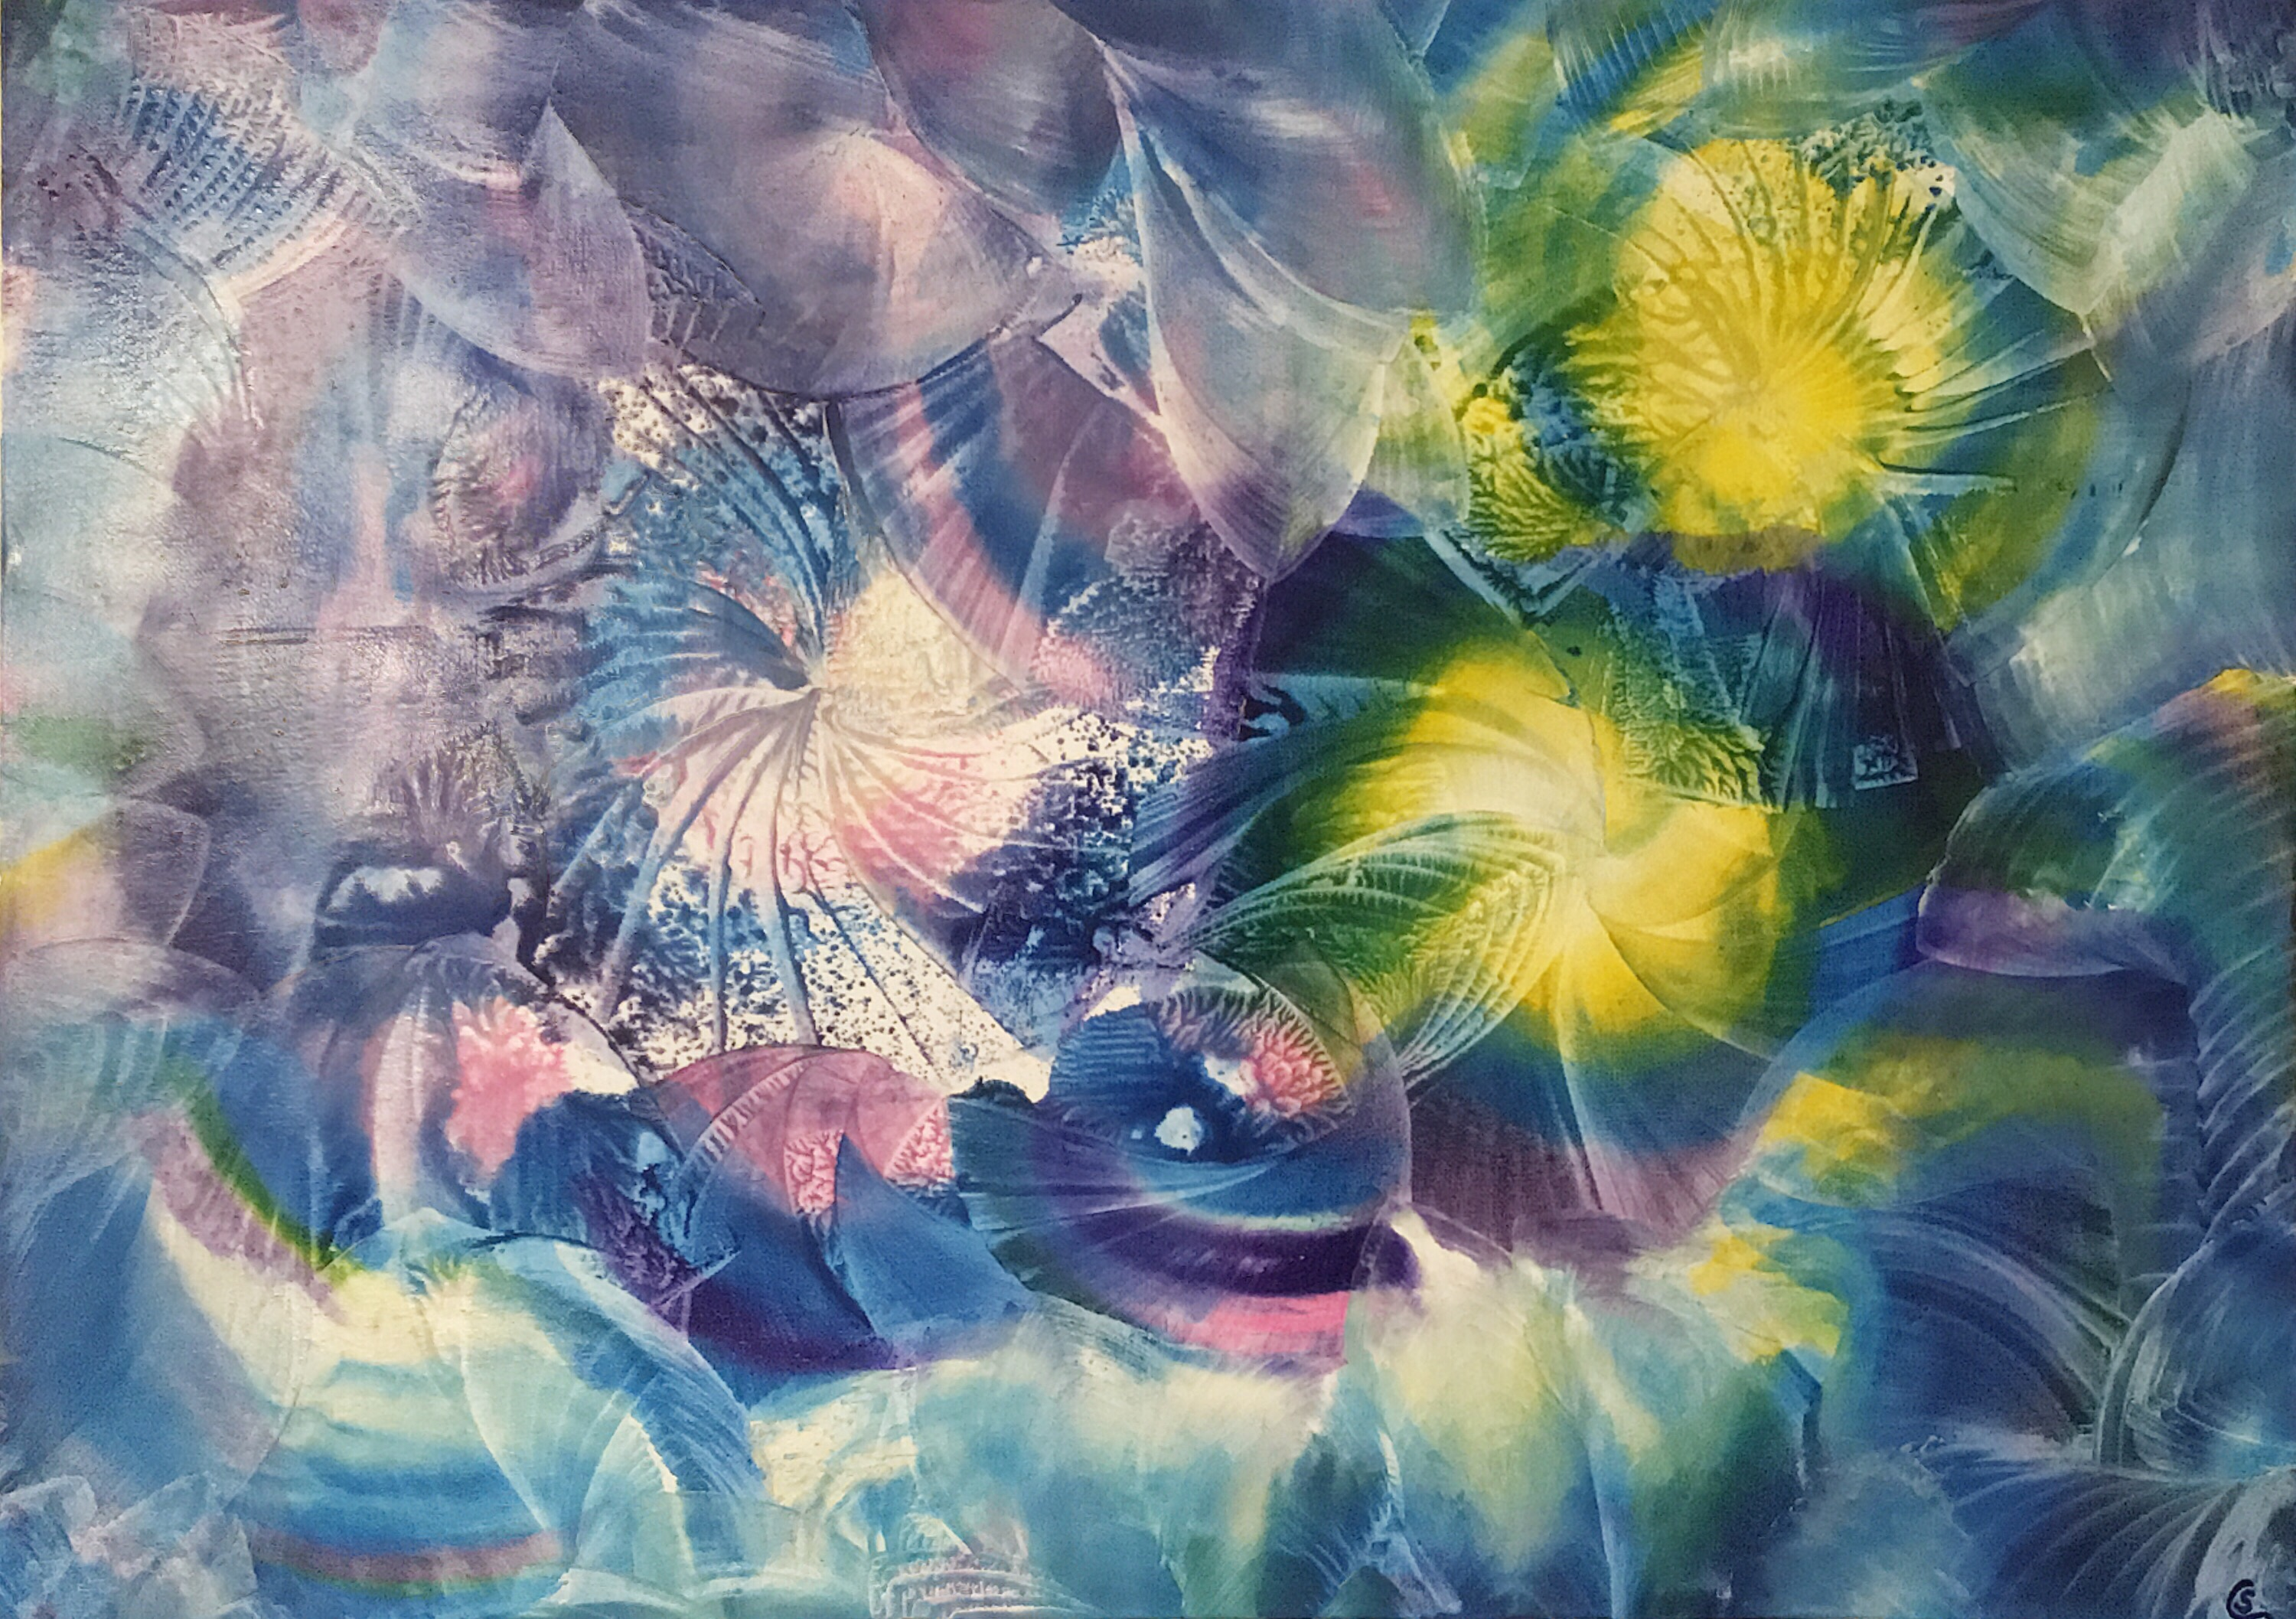 Tanz der Schneeflocken, dance of snowflakes, encaustic, 50x70 cm, canvas